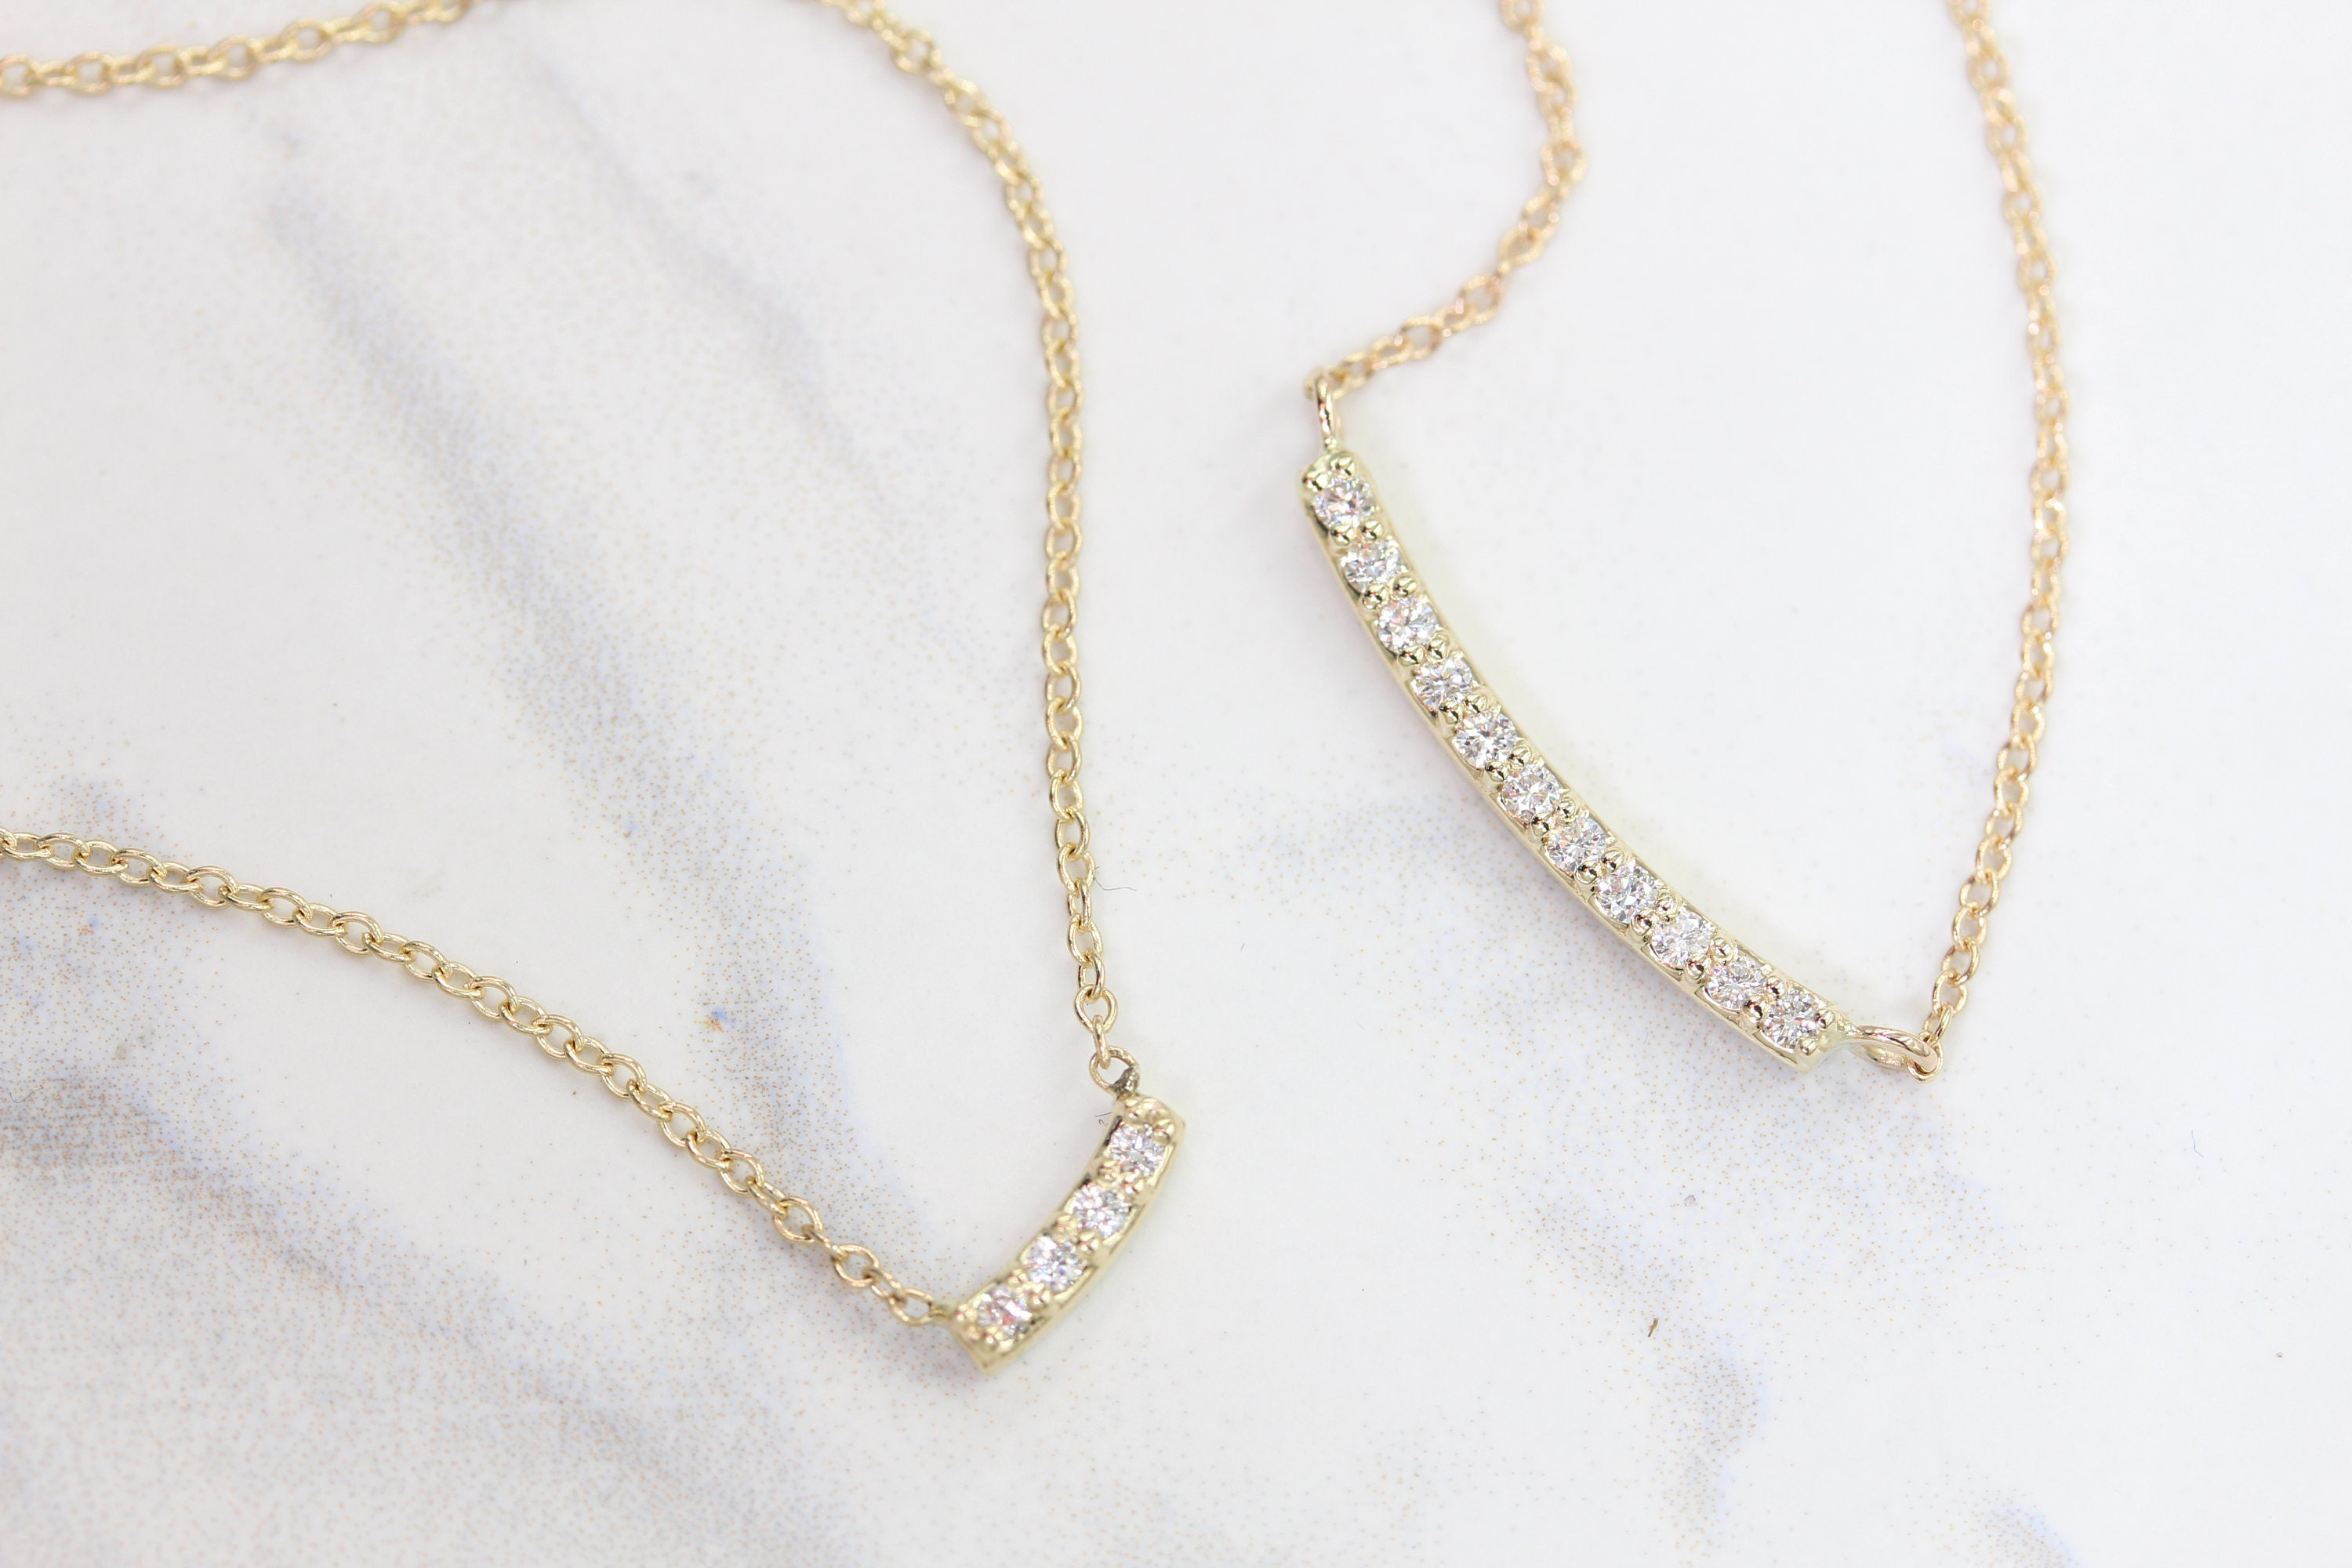 necklace with swarovski curved mini bar adore jewellery created zoom crystals gold necklaces